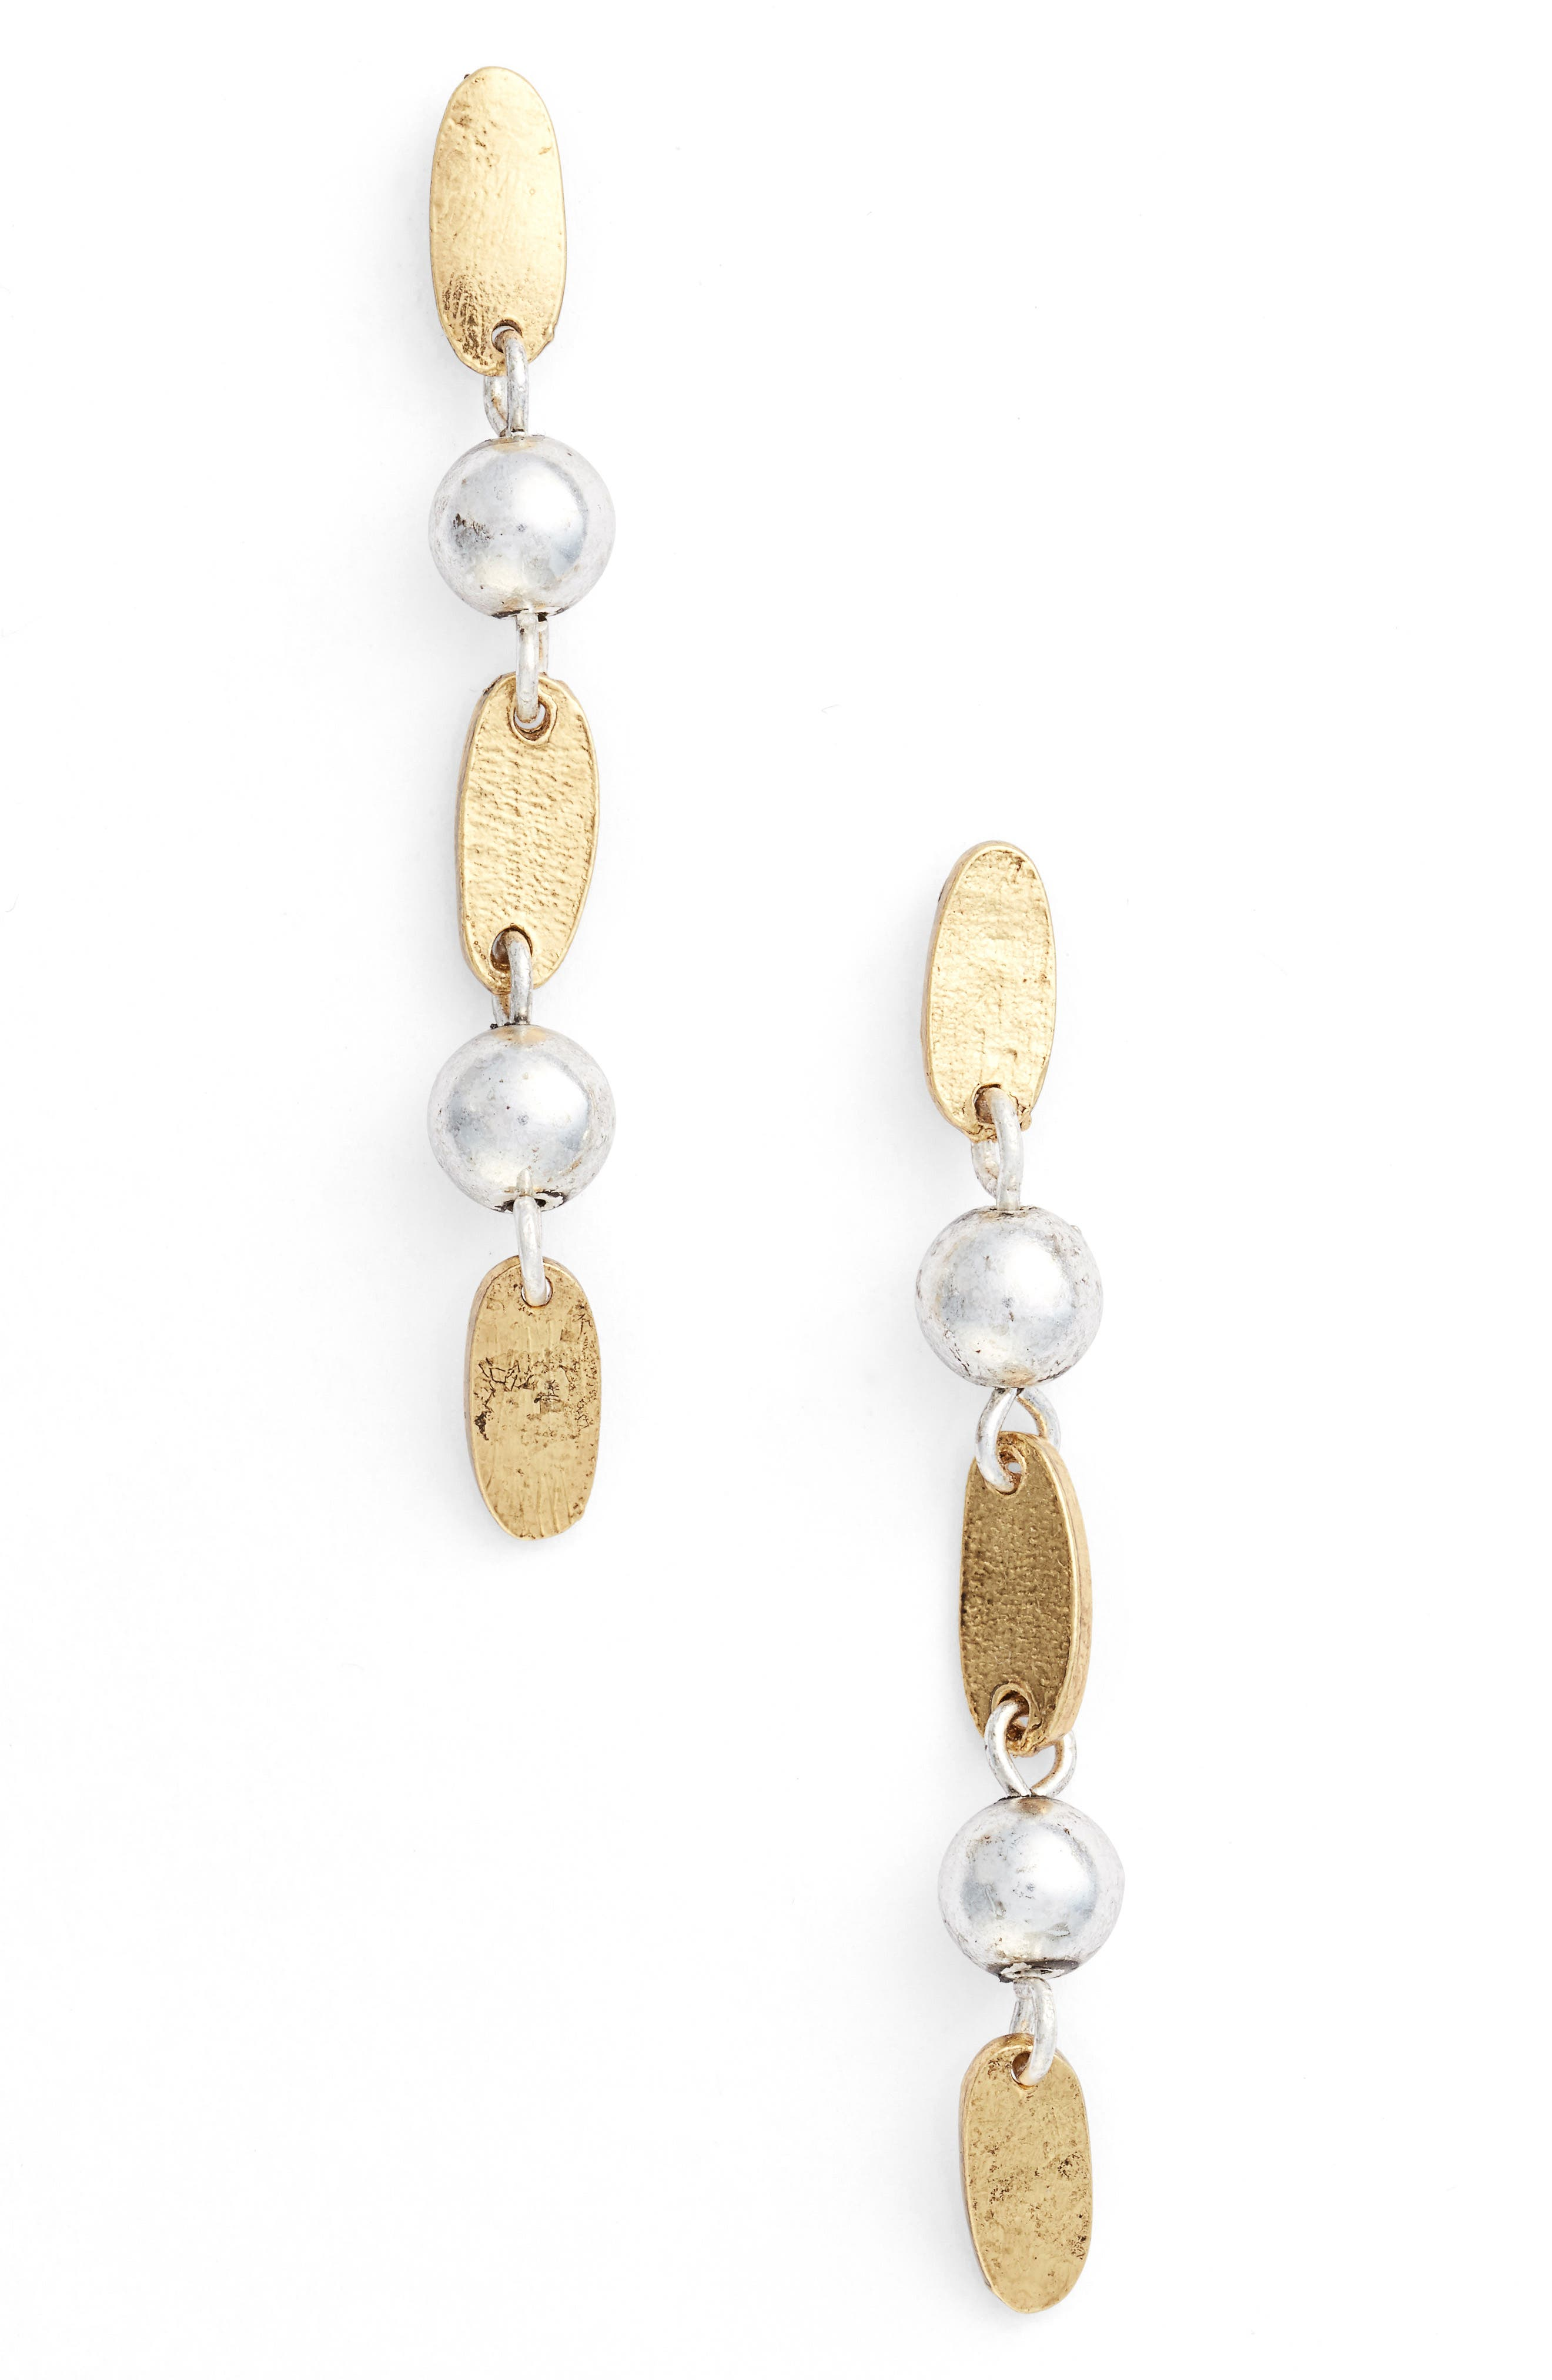 Two-Tone Linear Earrings,                         Main,                         color, GOLD/SILVER MIX